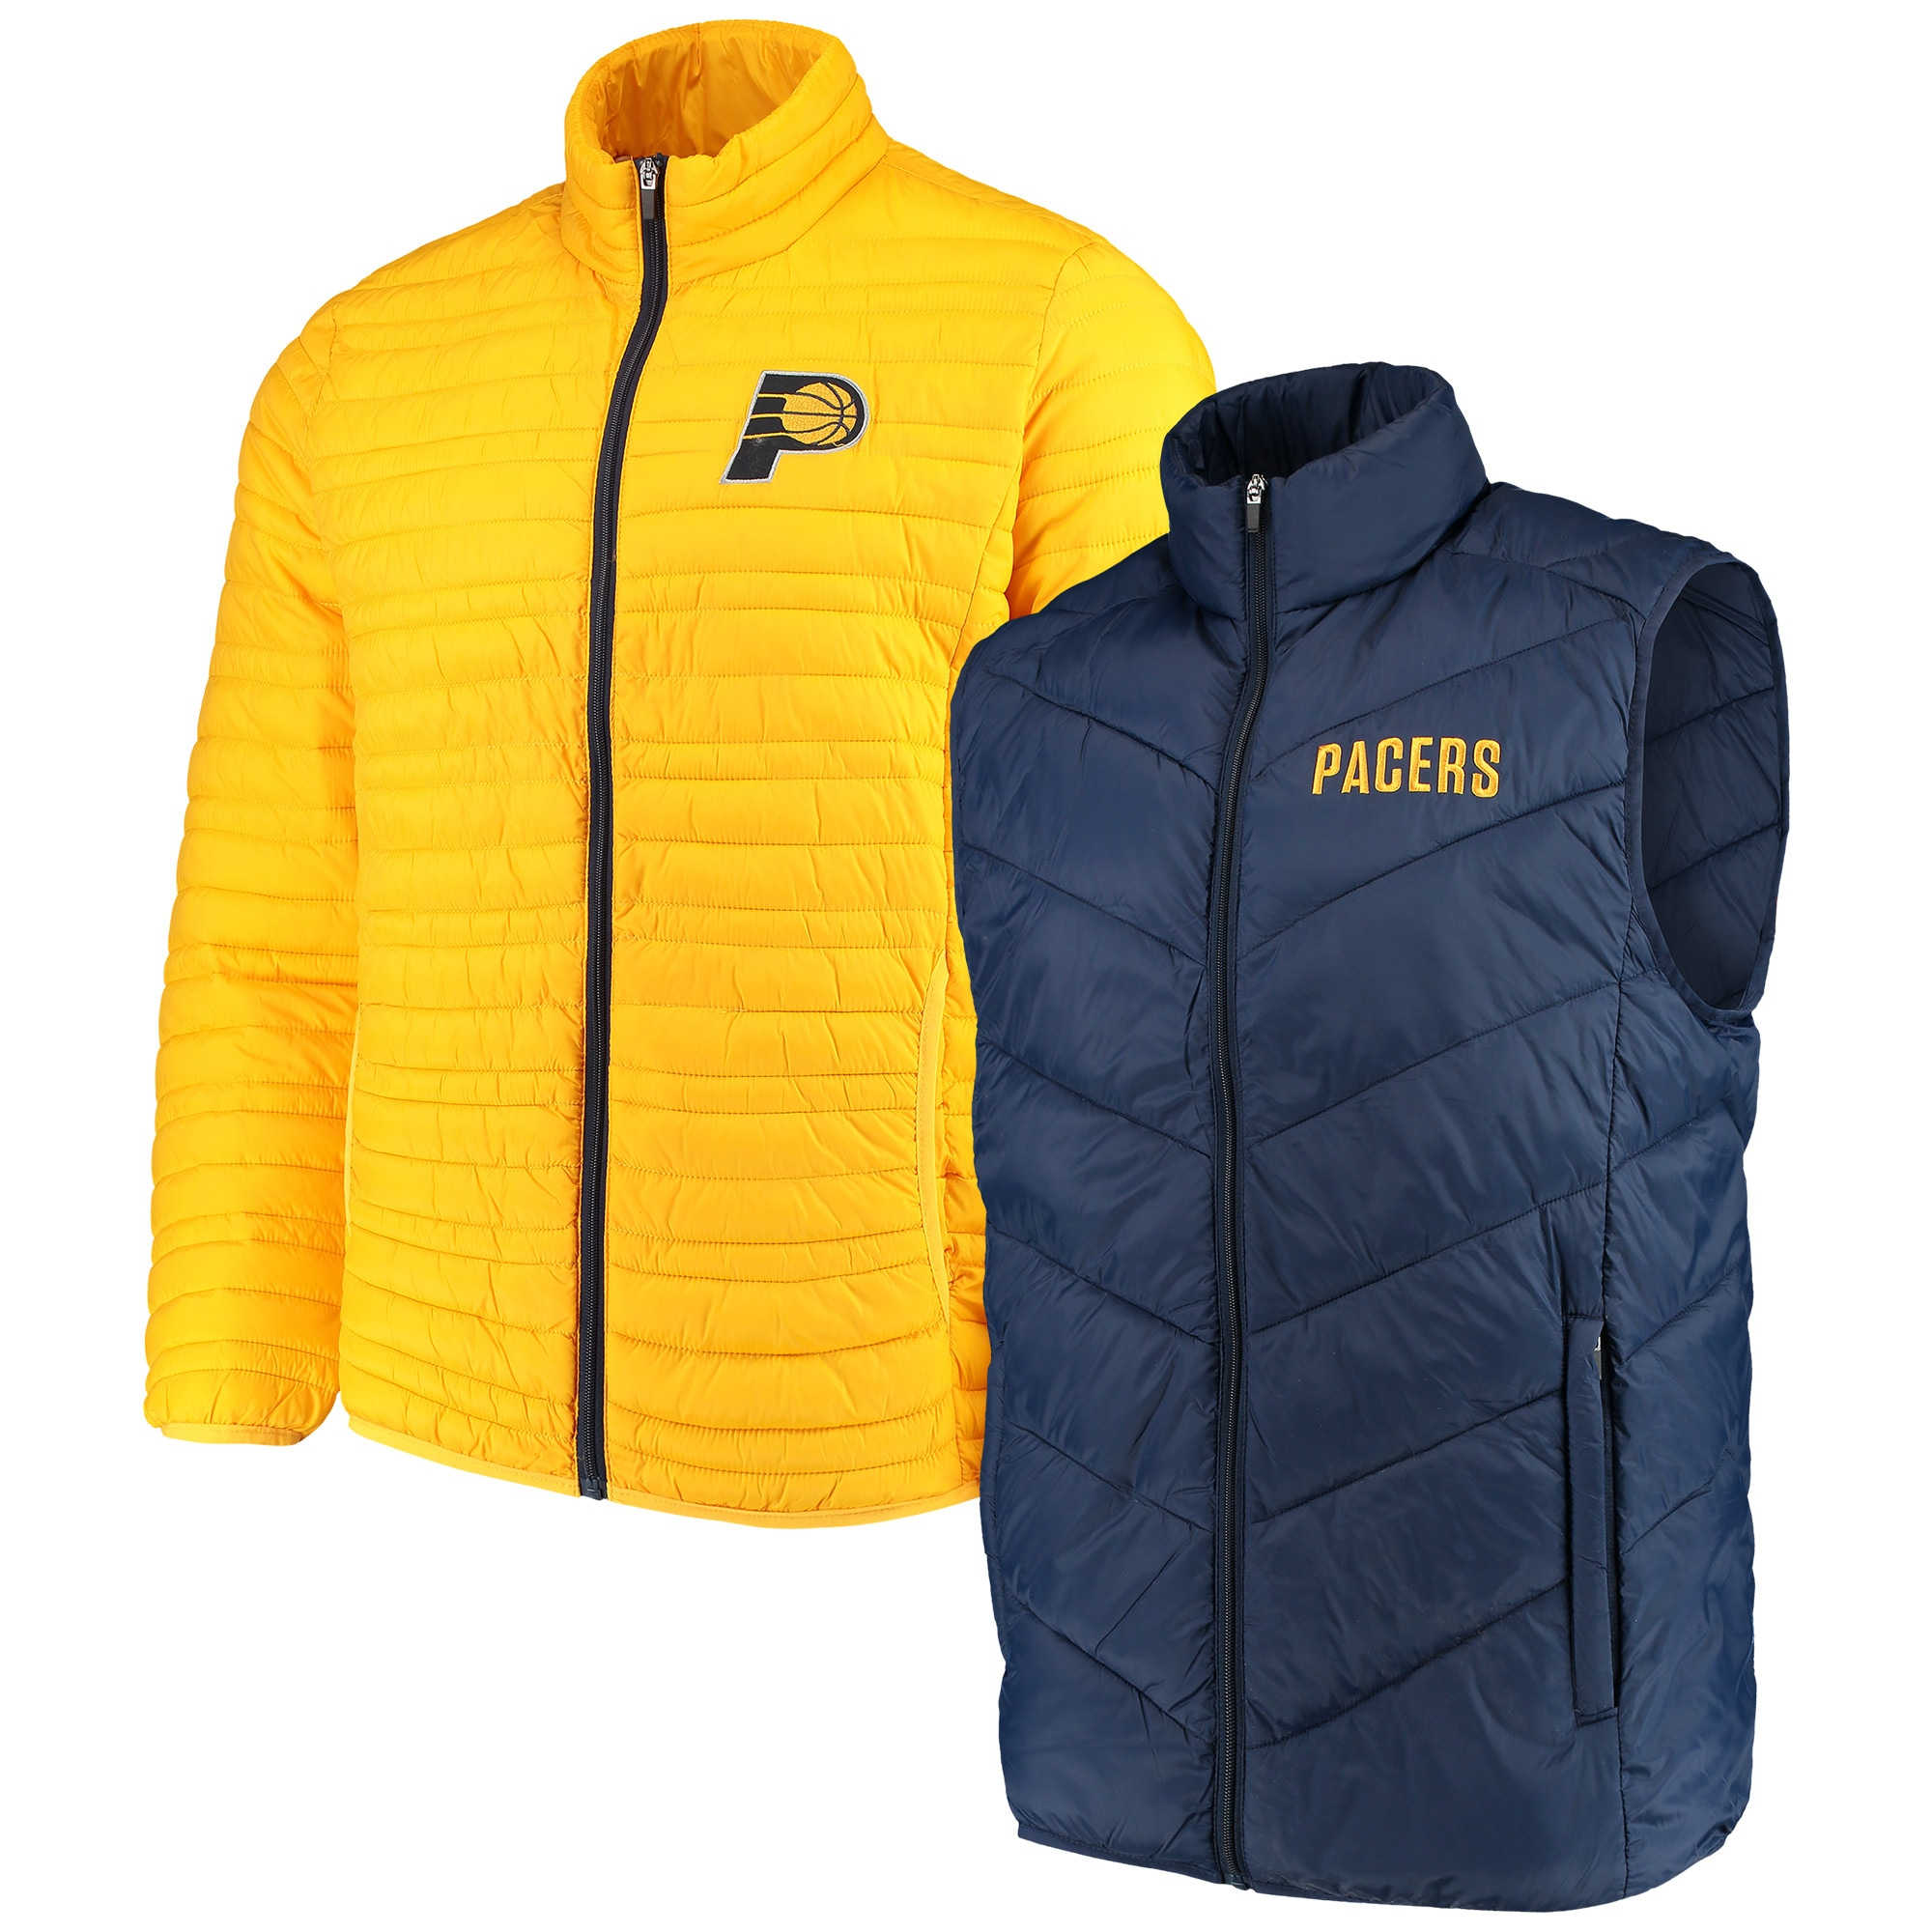 Indiana Pacers G-III Sports by Carl Banks Three & Out 3-in-1 System Full-Zip Vest & Jacket Set - Navy/Gold